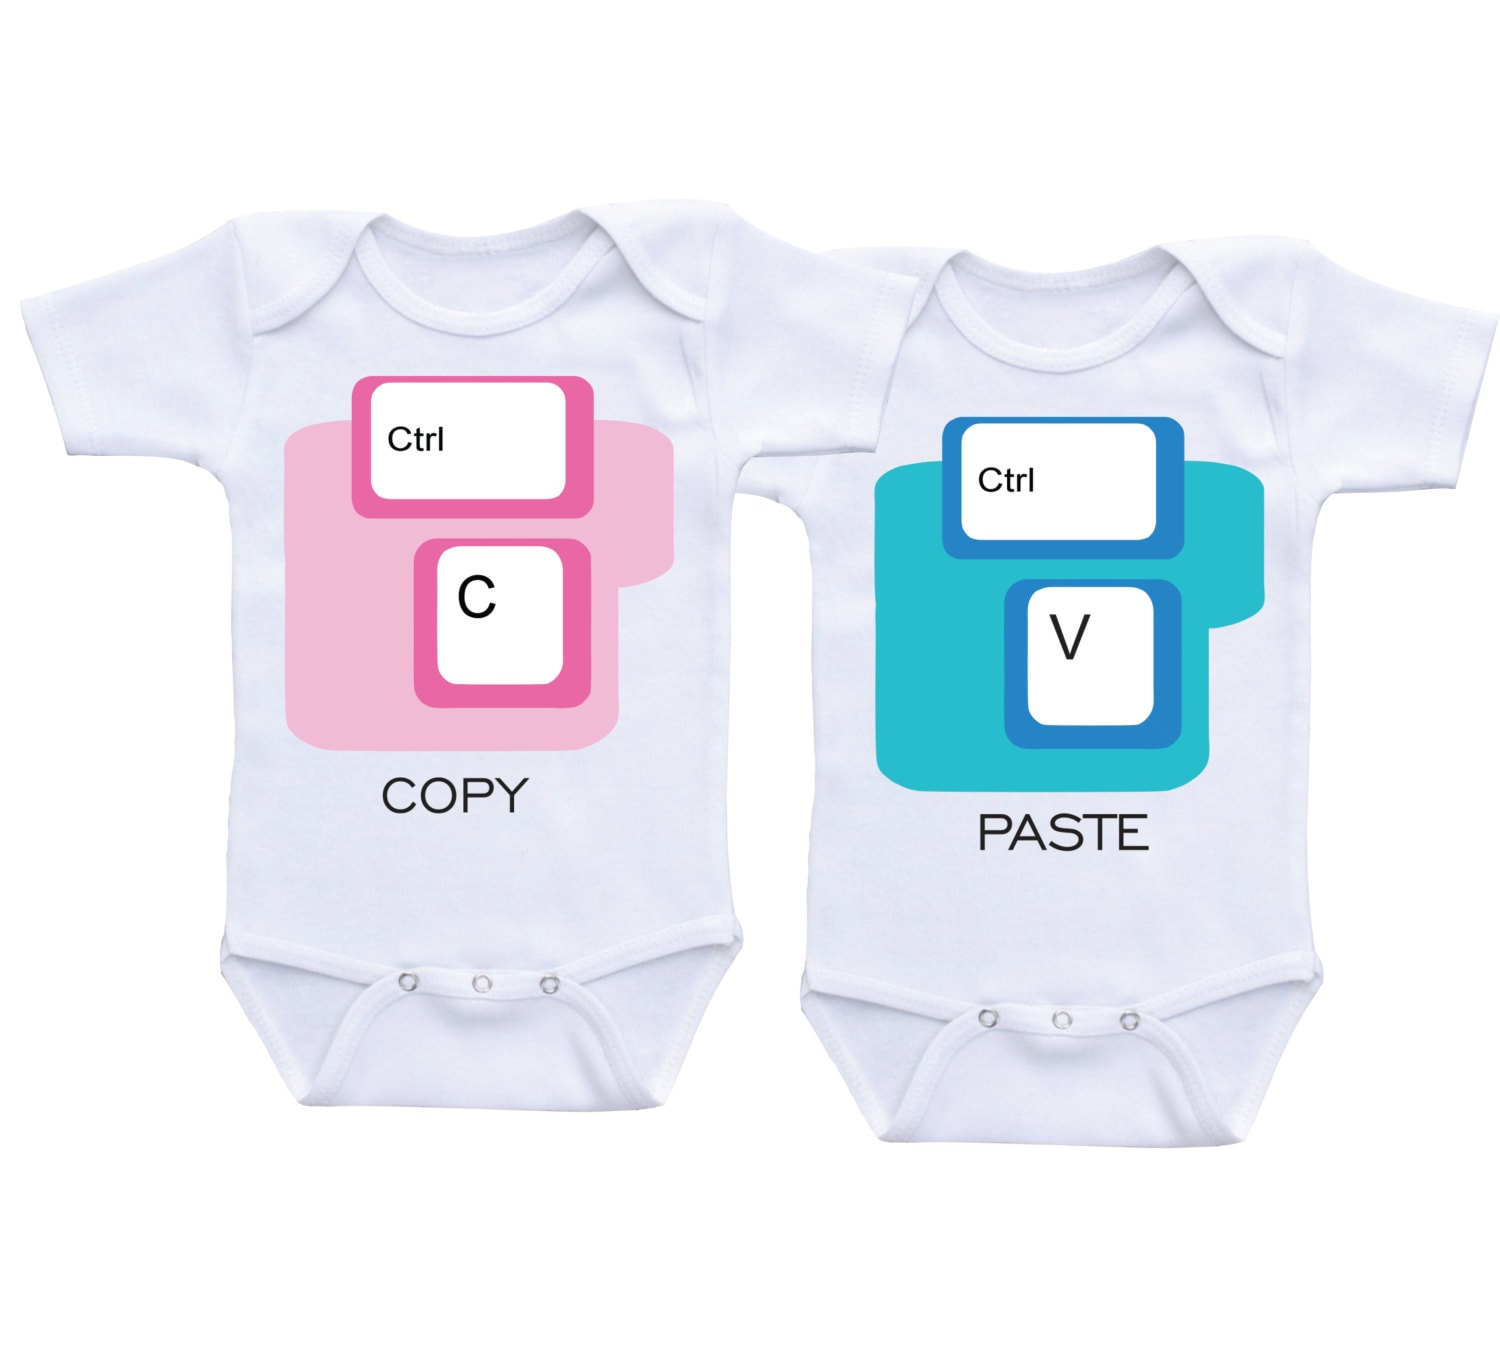 Copy and Paste Twin esies CtrlC and CtrlV Funny Twins